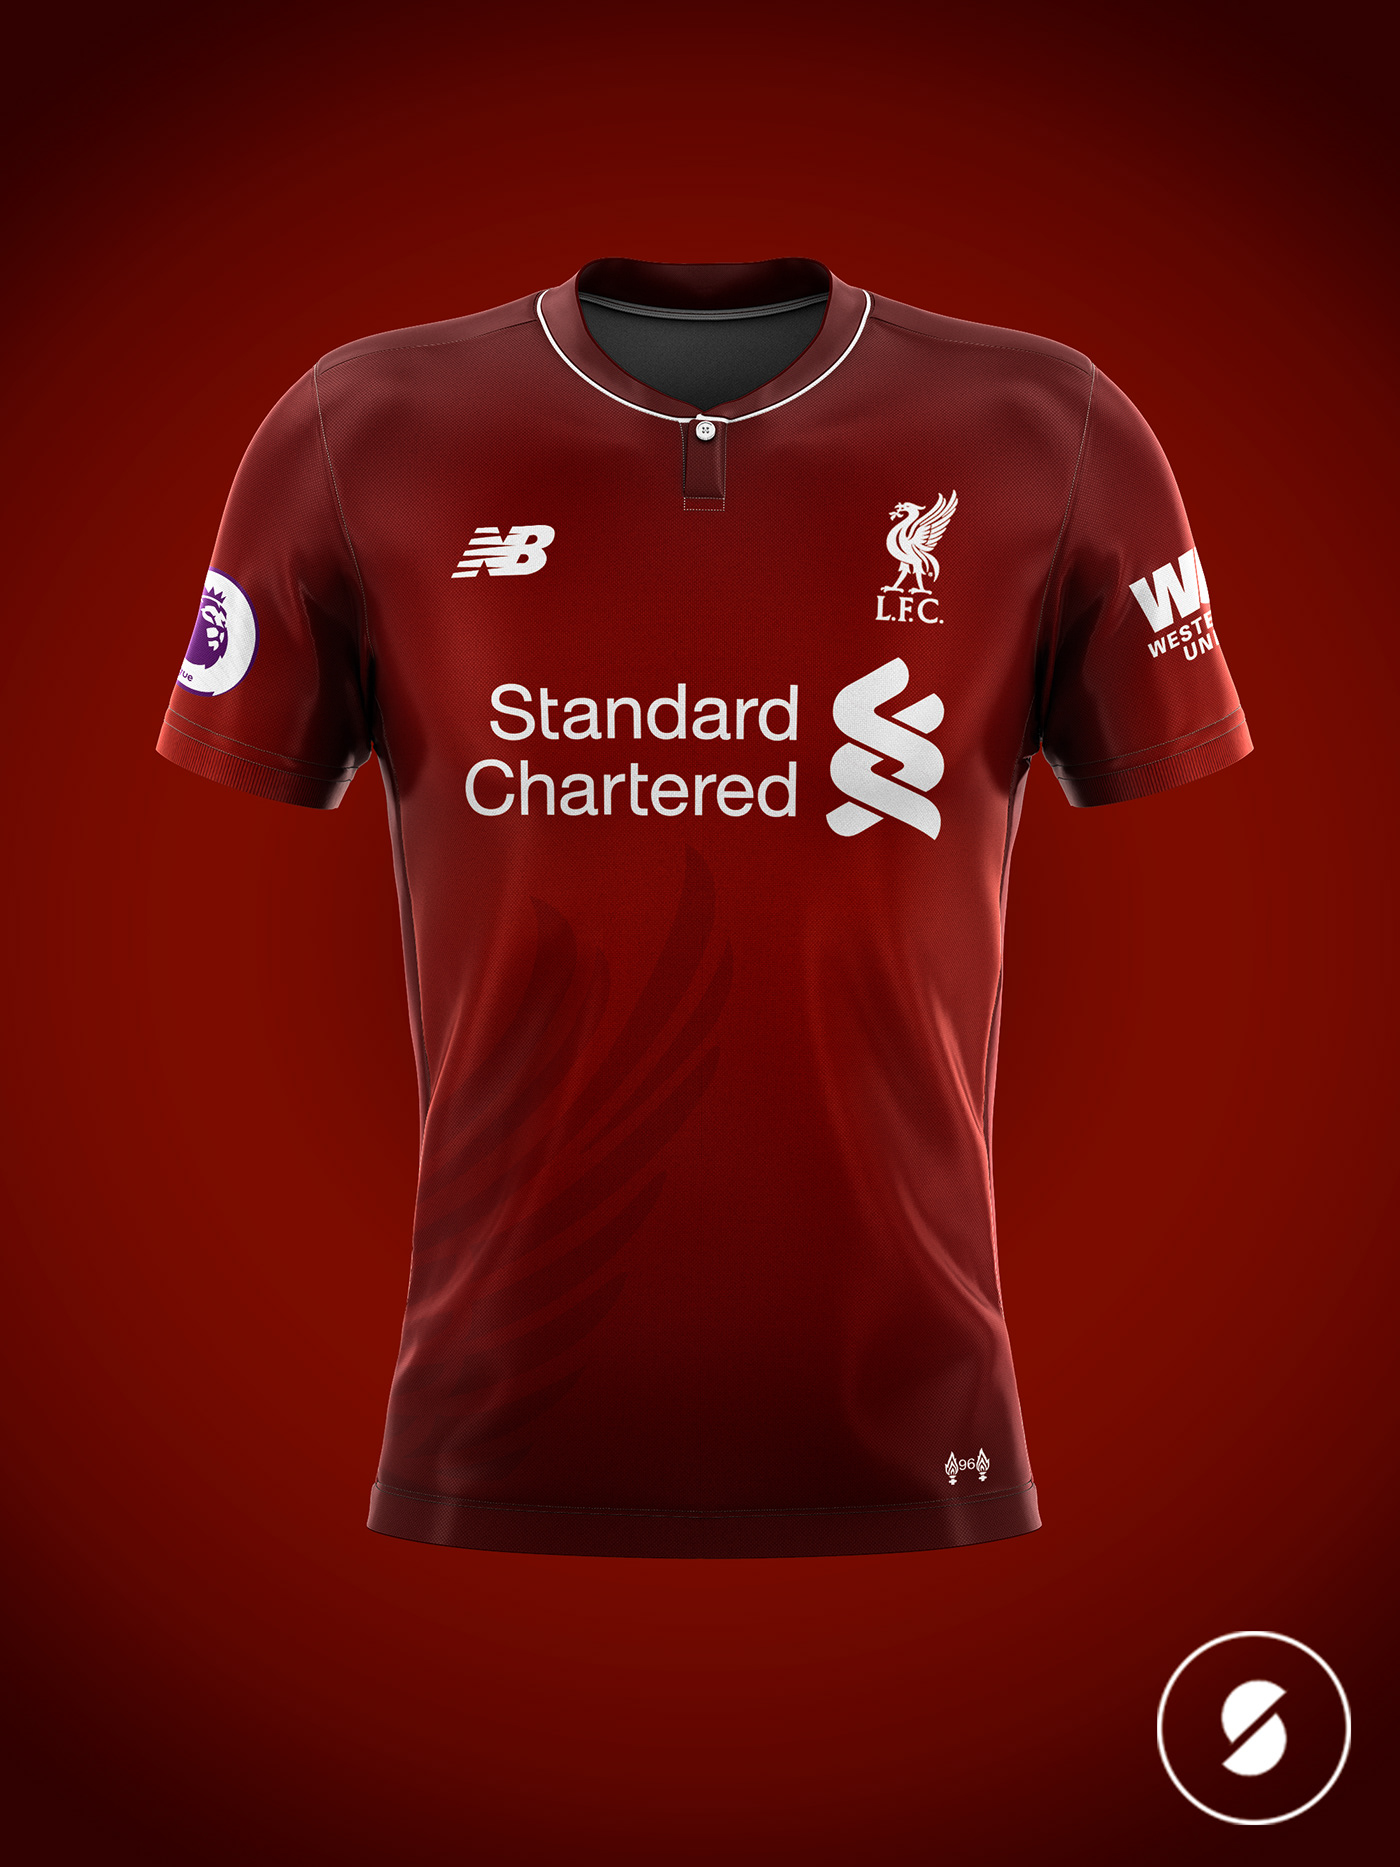 6ff492e6861 Concept kits if Liverpool decide on Nike as the next kit sponsor. Classic Home  kit with the darker red from recent years. A throwback to our Yellow Candy  ...